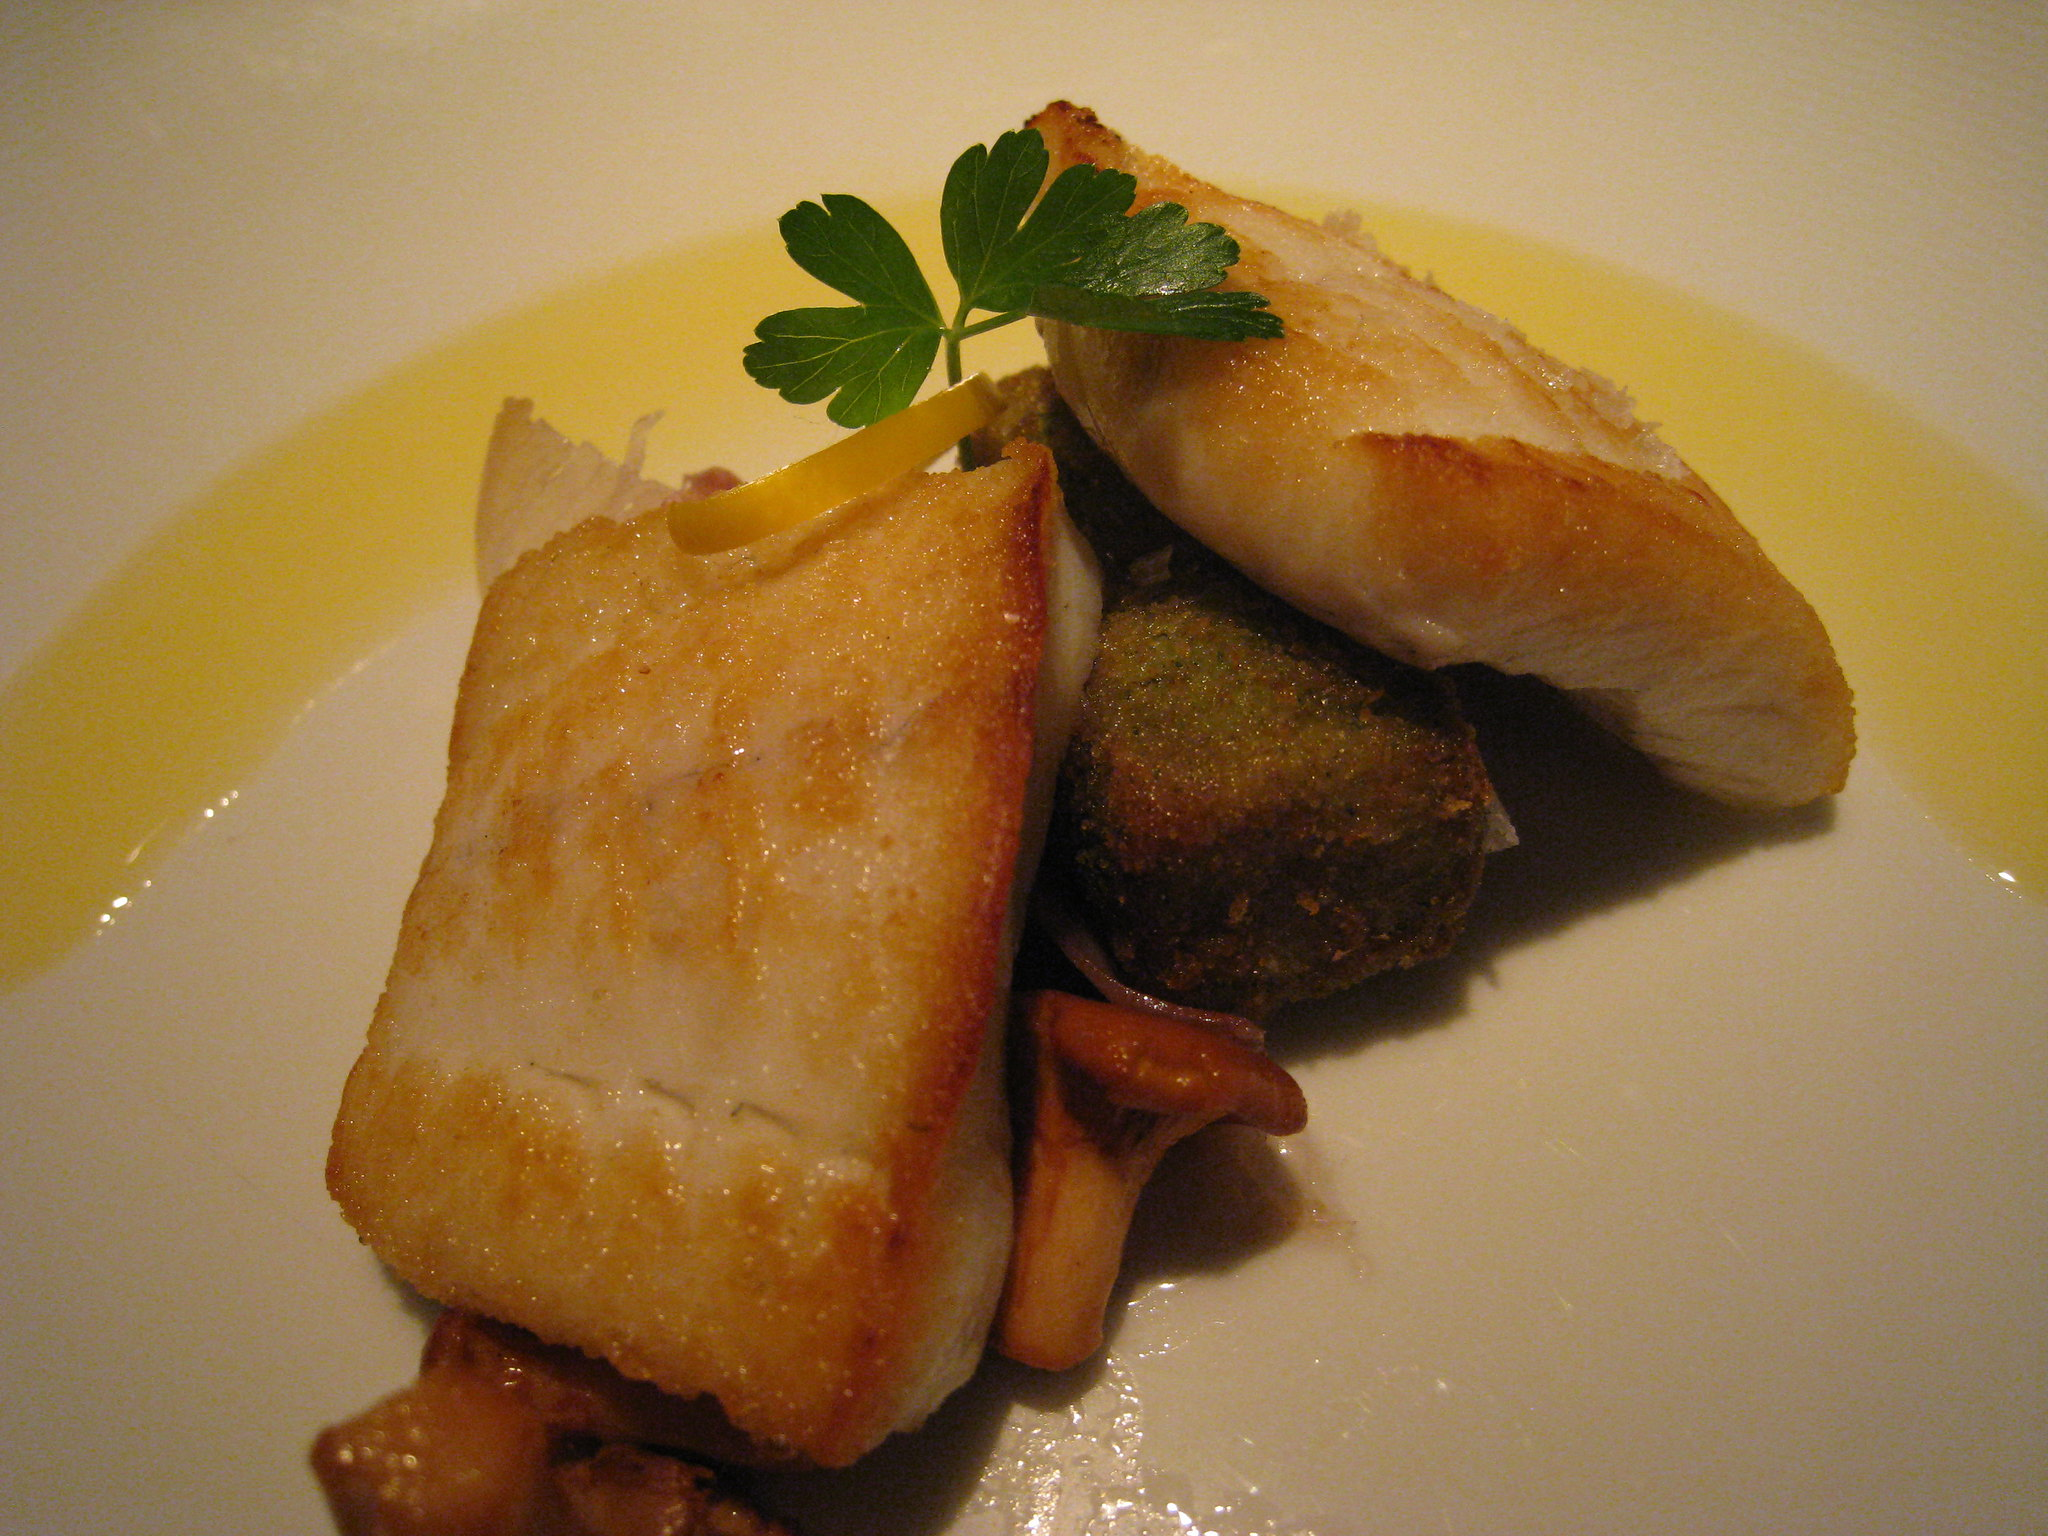 Anthony Bourdain Burgundy Roasted Turbot, Nouvelle Style - photo by cplbasilisk under CC BY 2.0